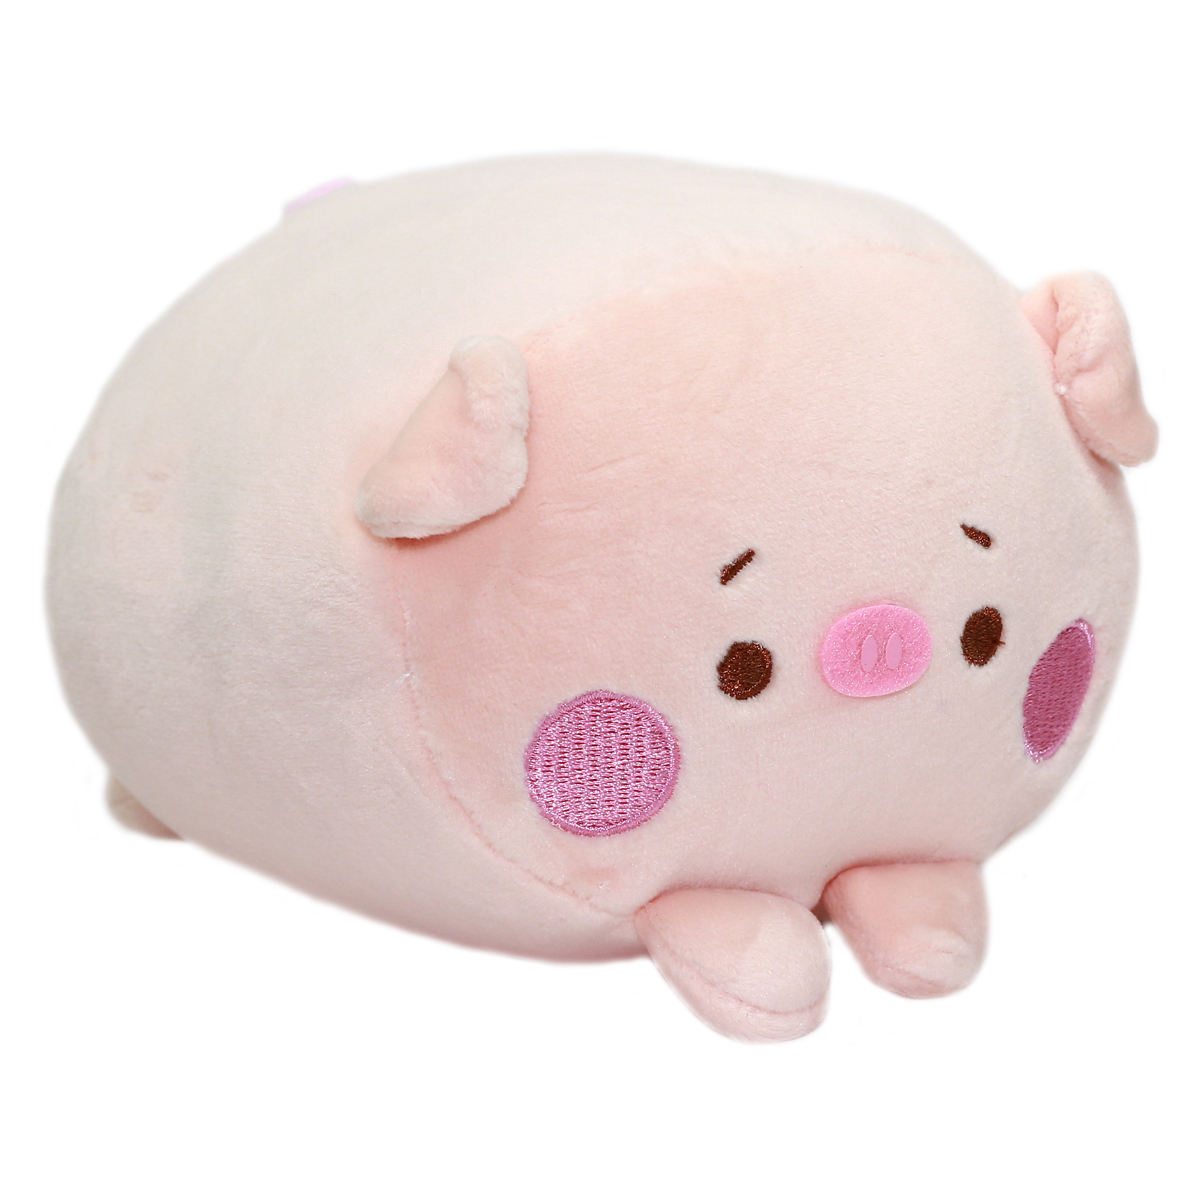 Soft & Squishy Big Bad Wolf Plush Collection Pig Pink 6 Inches